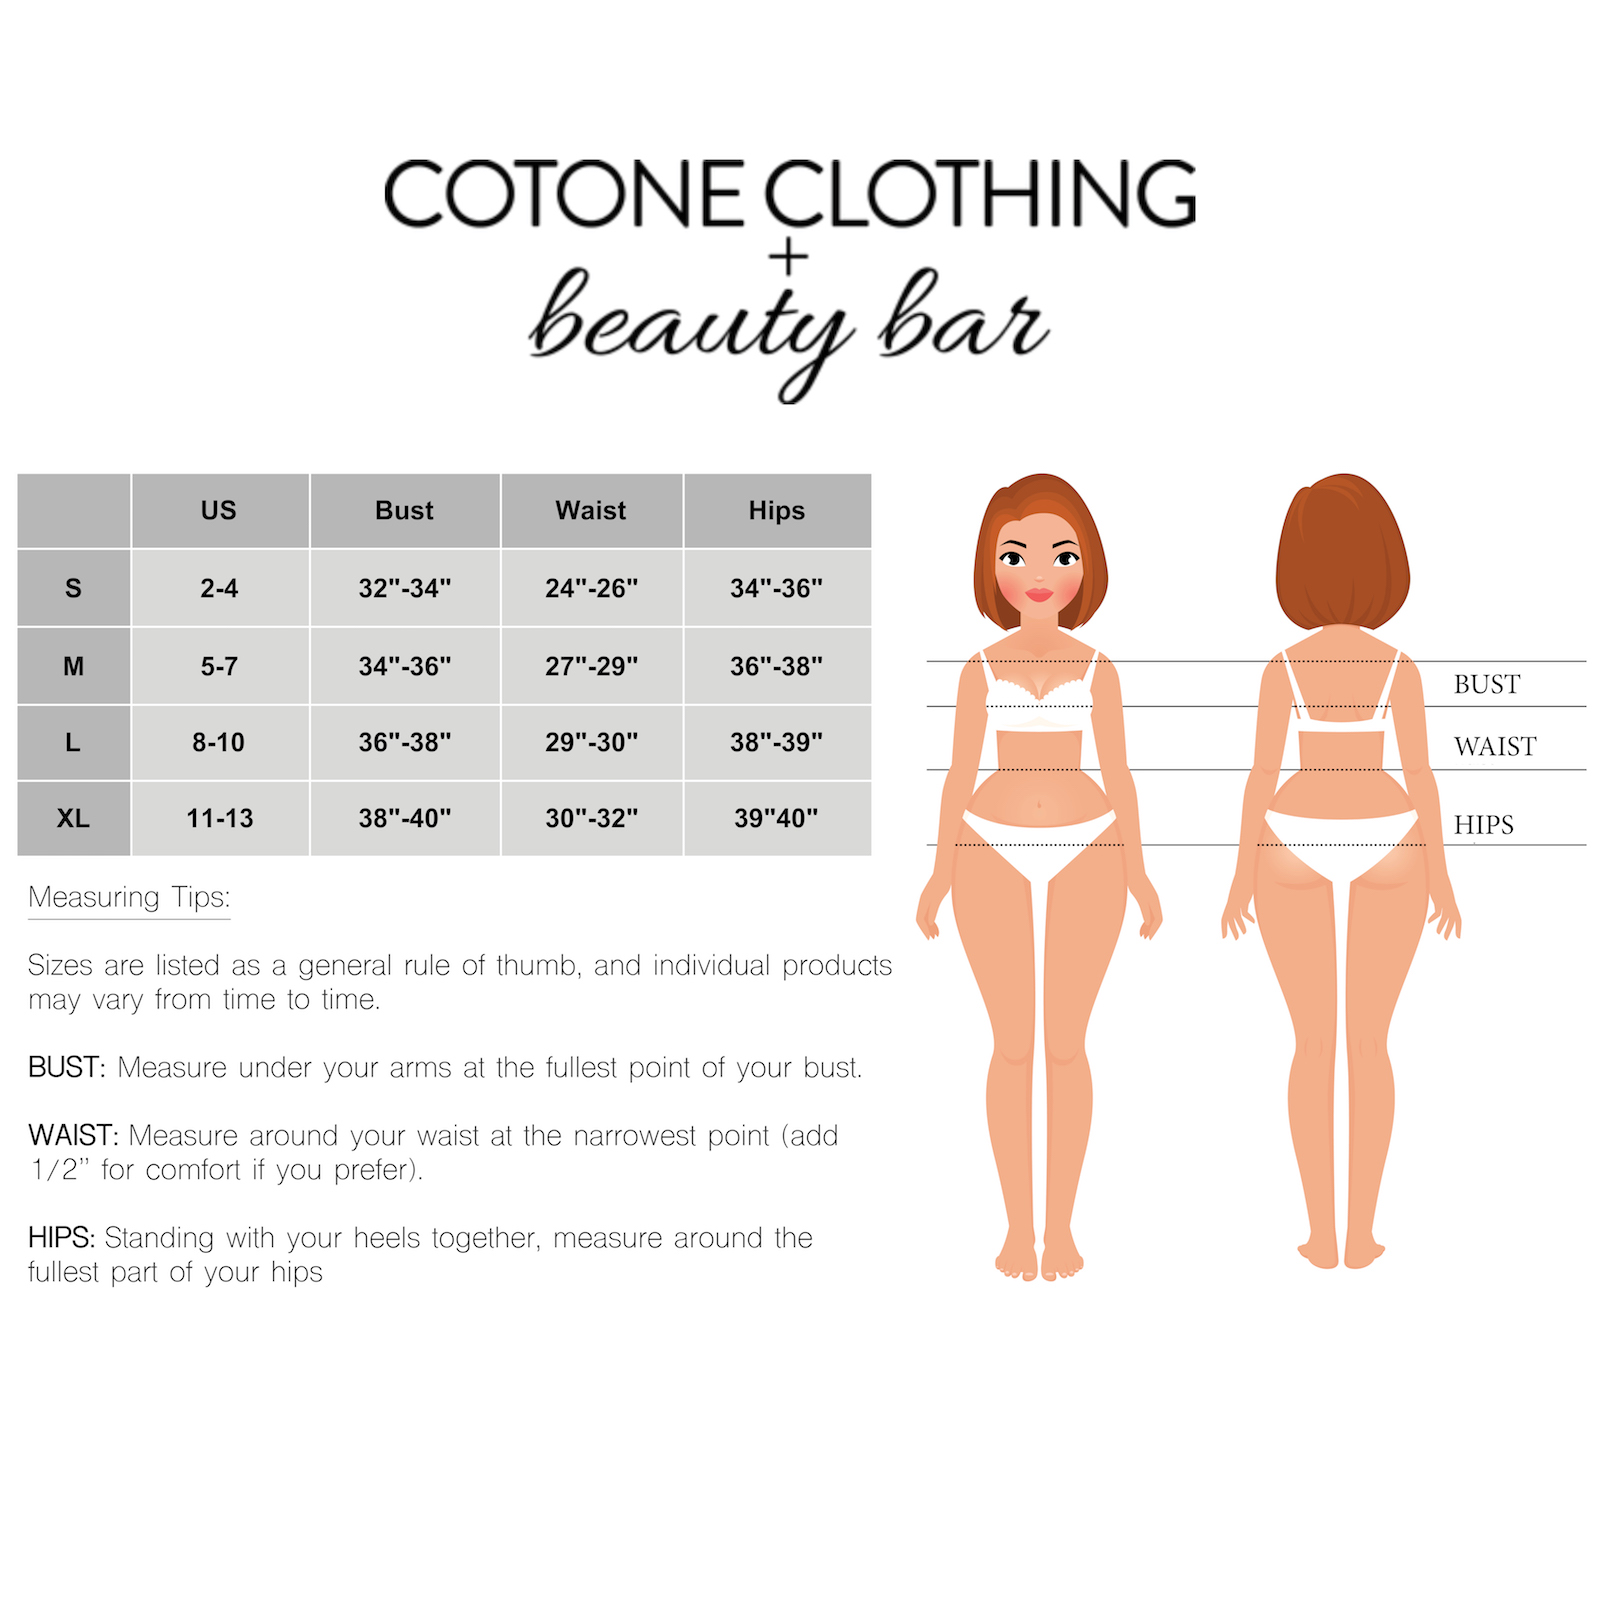 cotone-clothing-size-chart.jpg